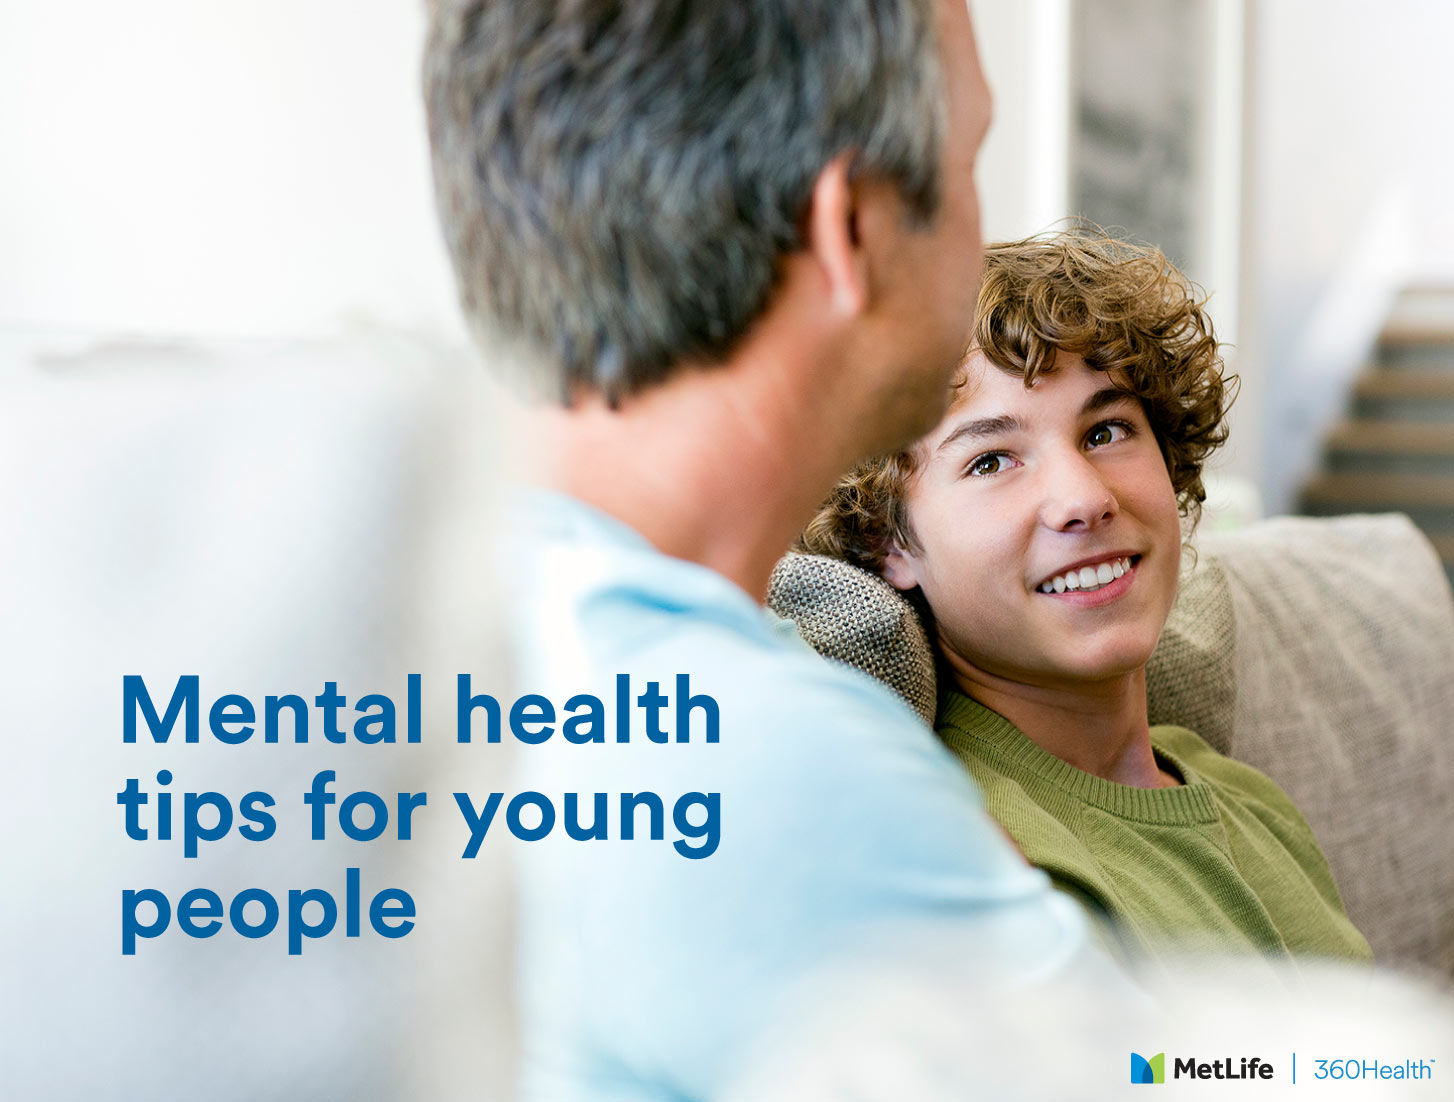 Mental health tips for young people